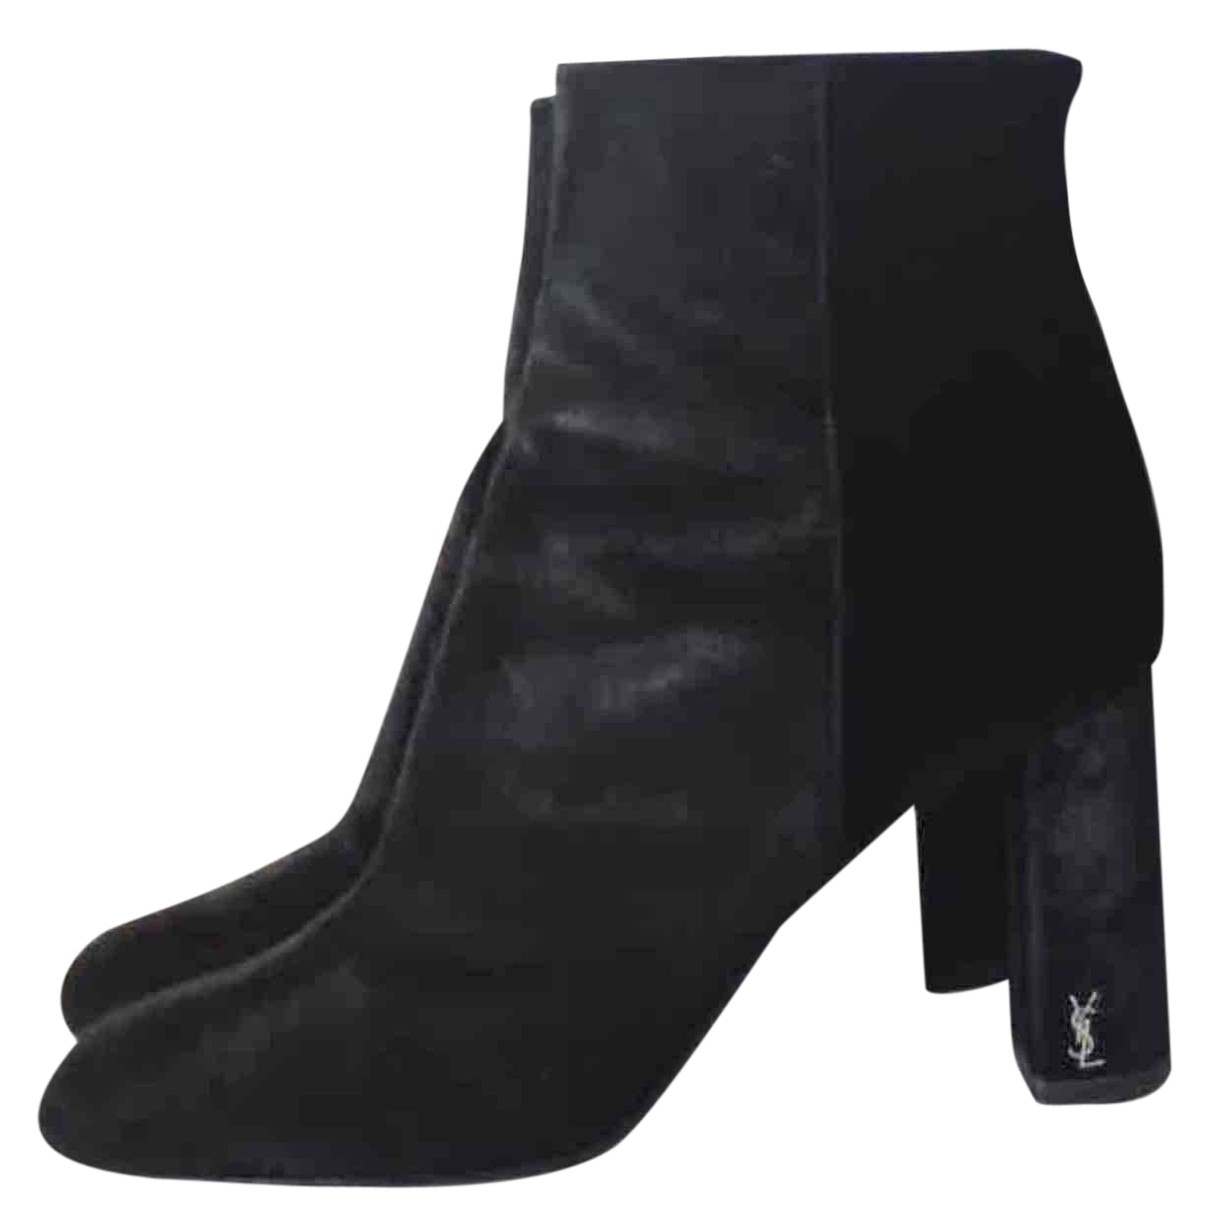 Saint Laurent Loulou Black Suede Ankle boots for Women 38 EU